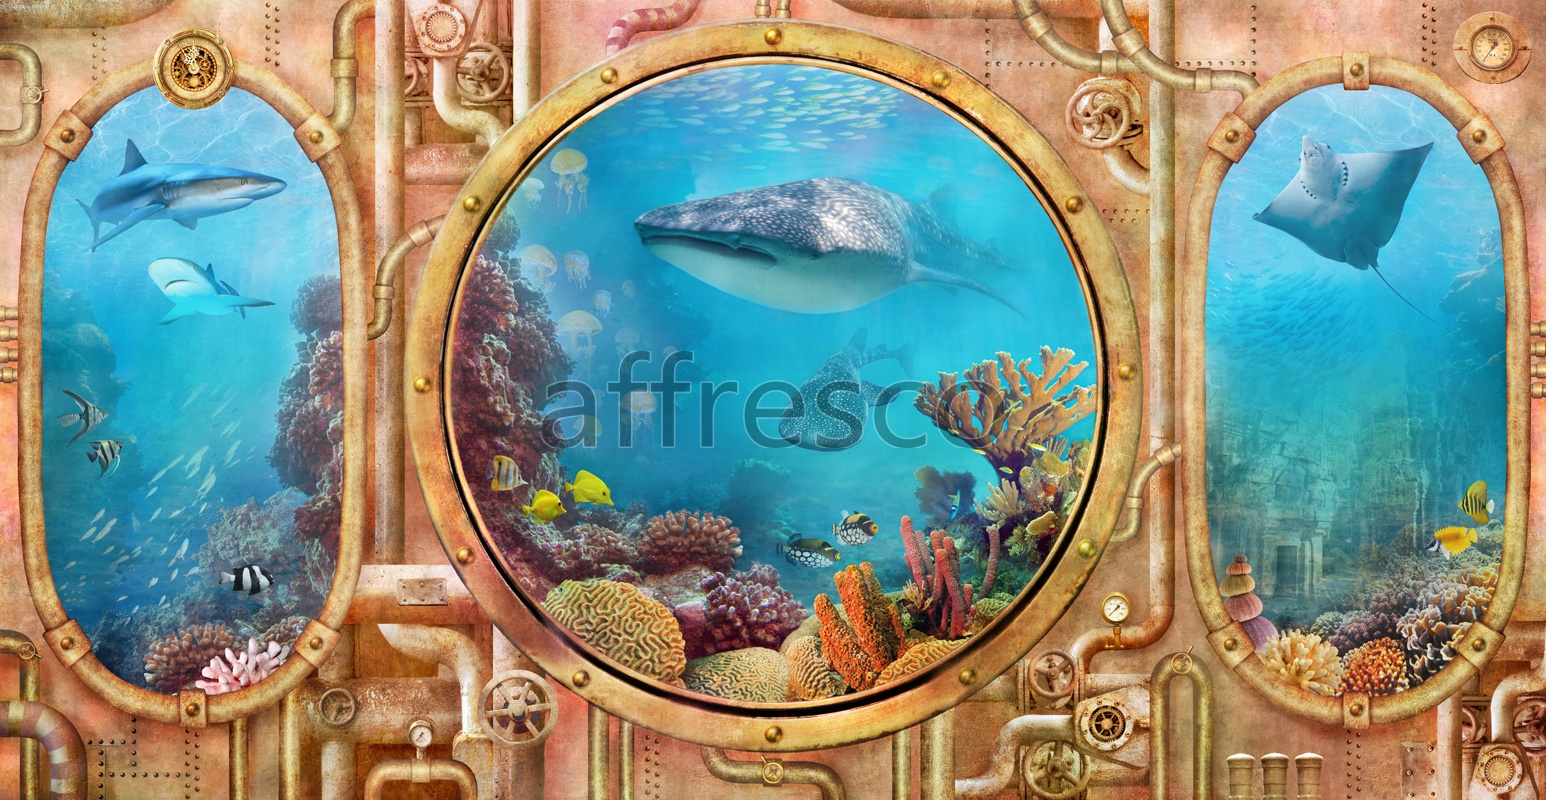 6472 | The best landscapes | Undersea world | Affresco Factory